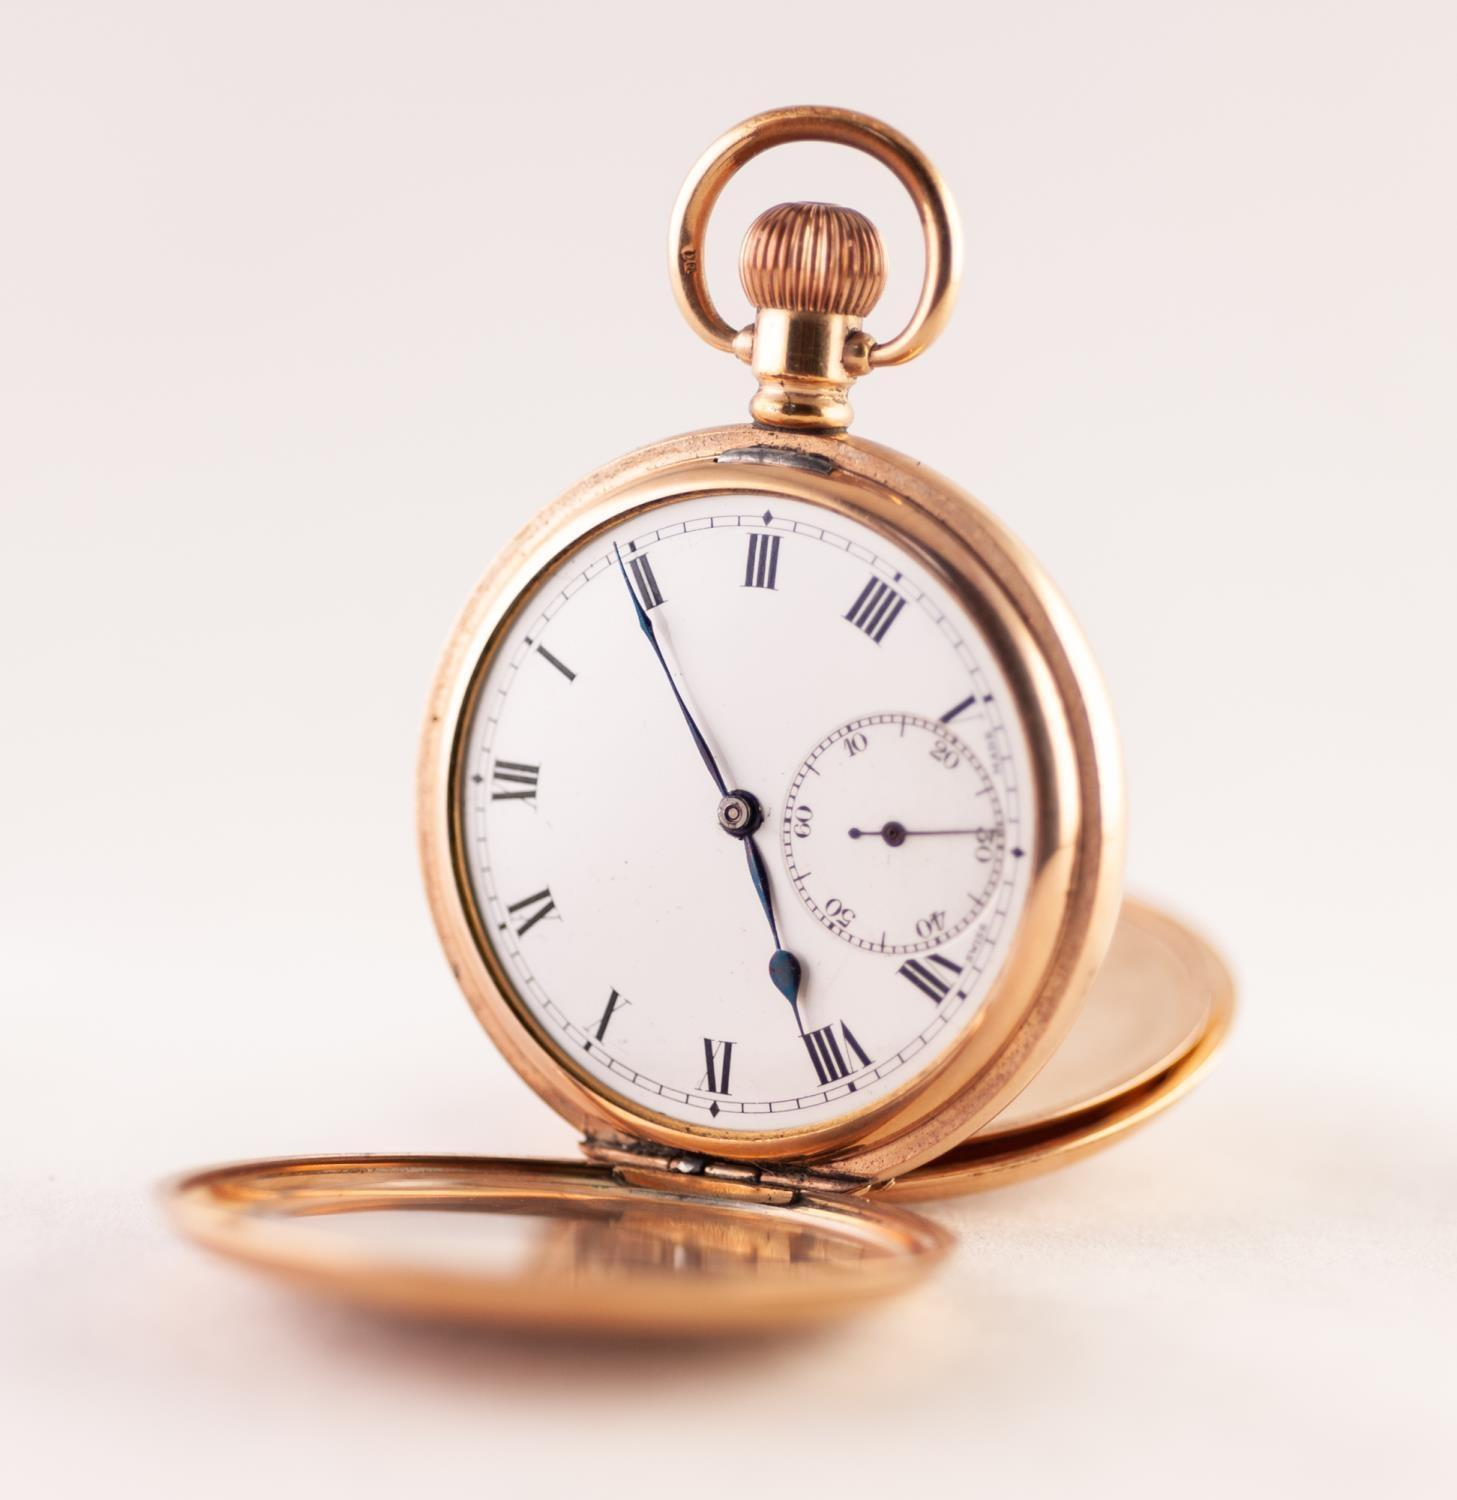 Lot 13 - A GOLD PLATED HUNTER POCKET WATCH 16 jewel movement signed DF&C, white enamel dial with Roman